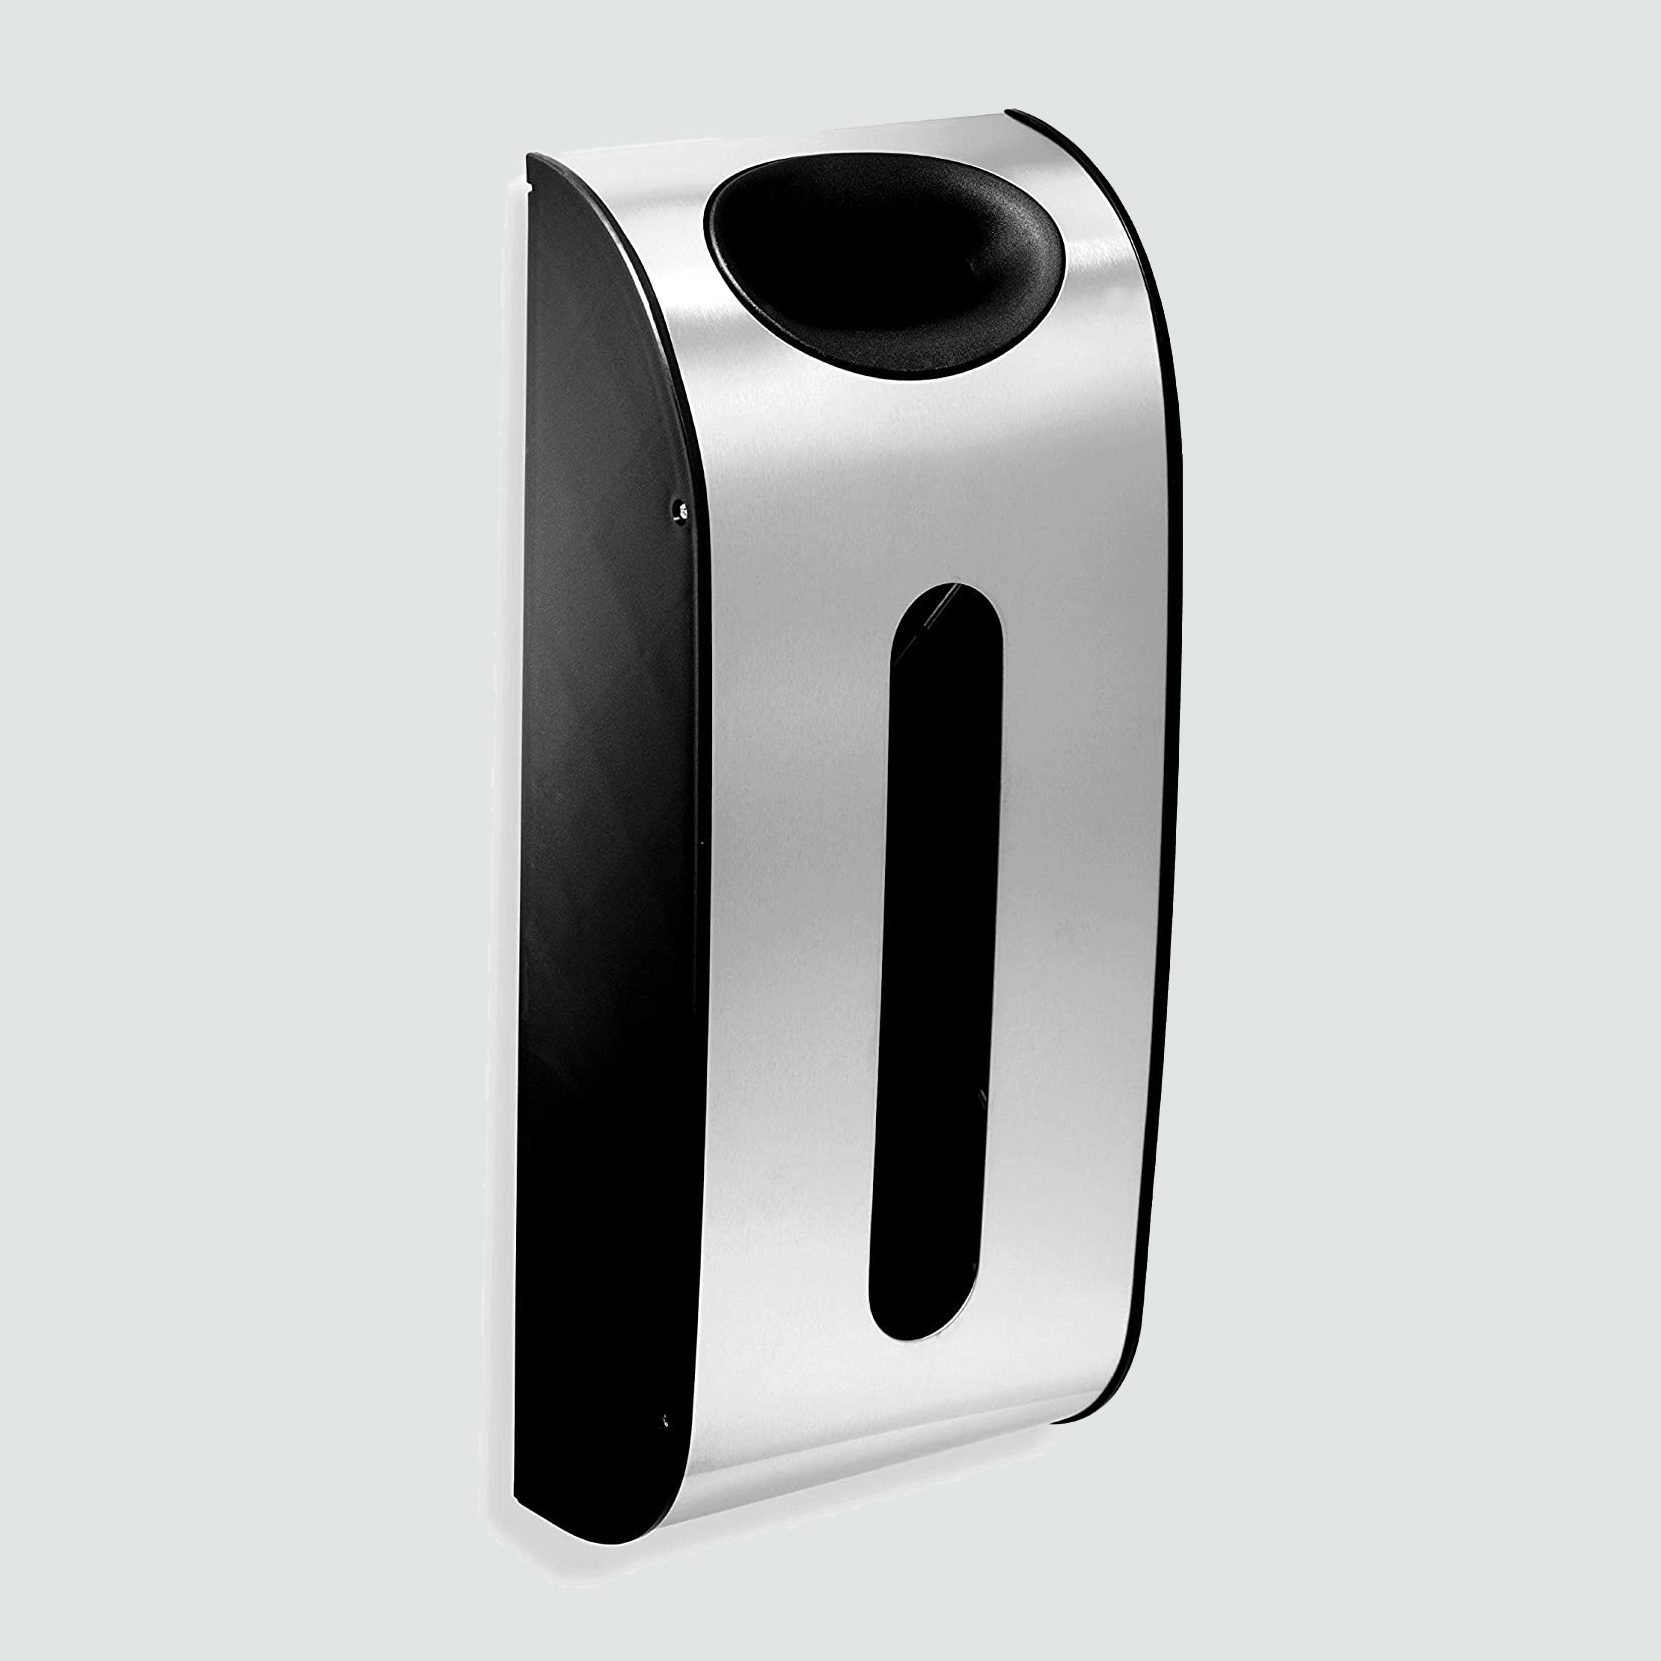 Simplehuman wall-mounted grocery bag dispenser